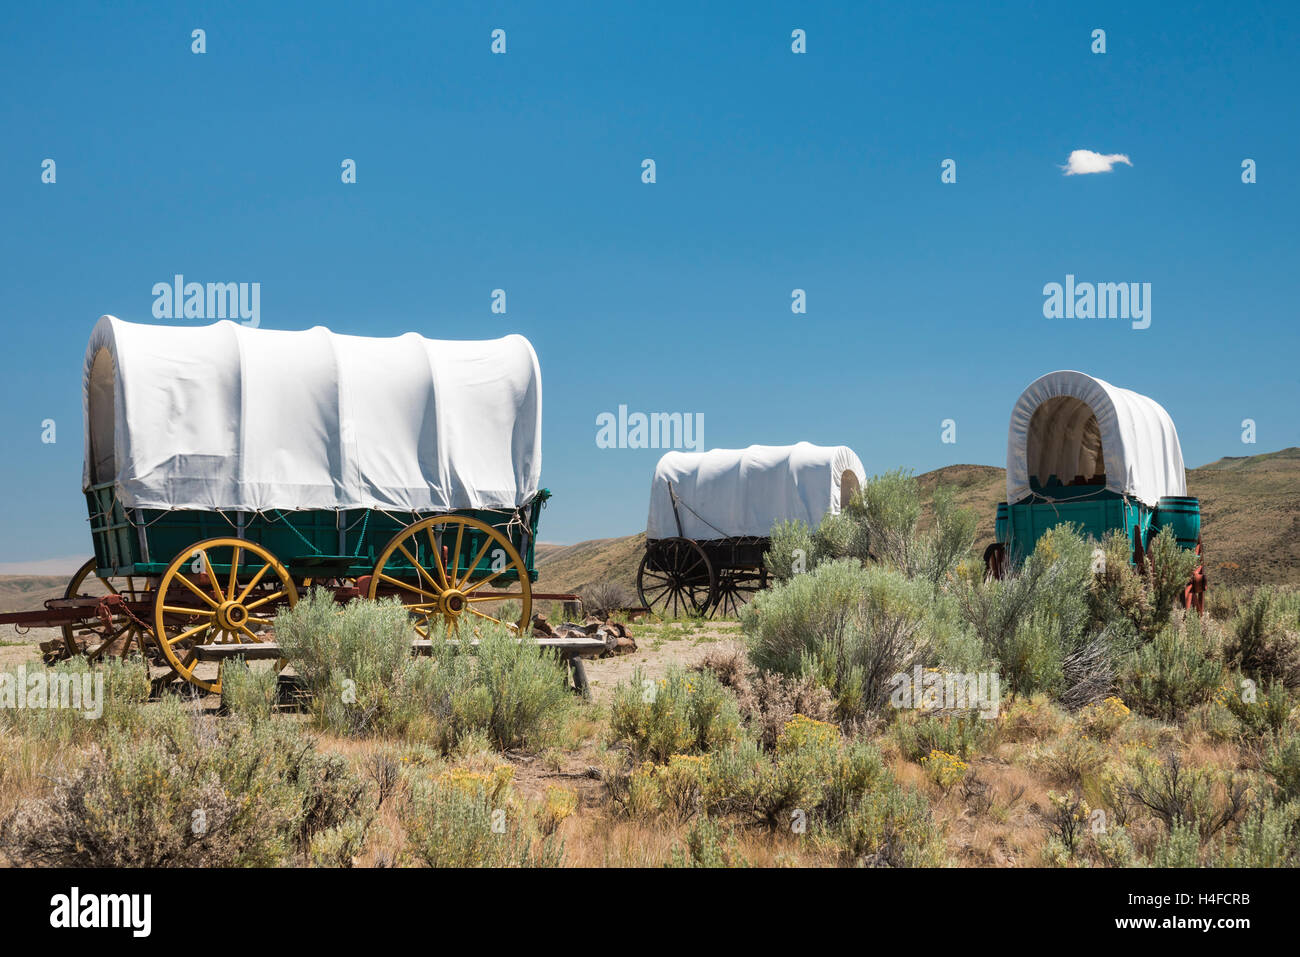 Covered wagons at the National Historic Oregon Trail Interpretive Center at Flagstaff Hill near Baker City, Oregon. - Stock Image